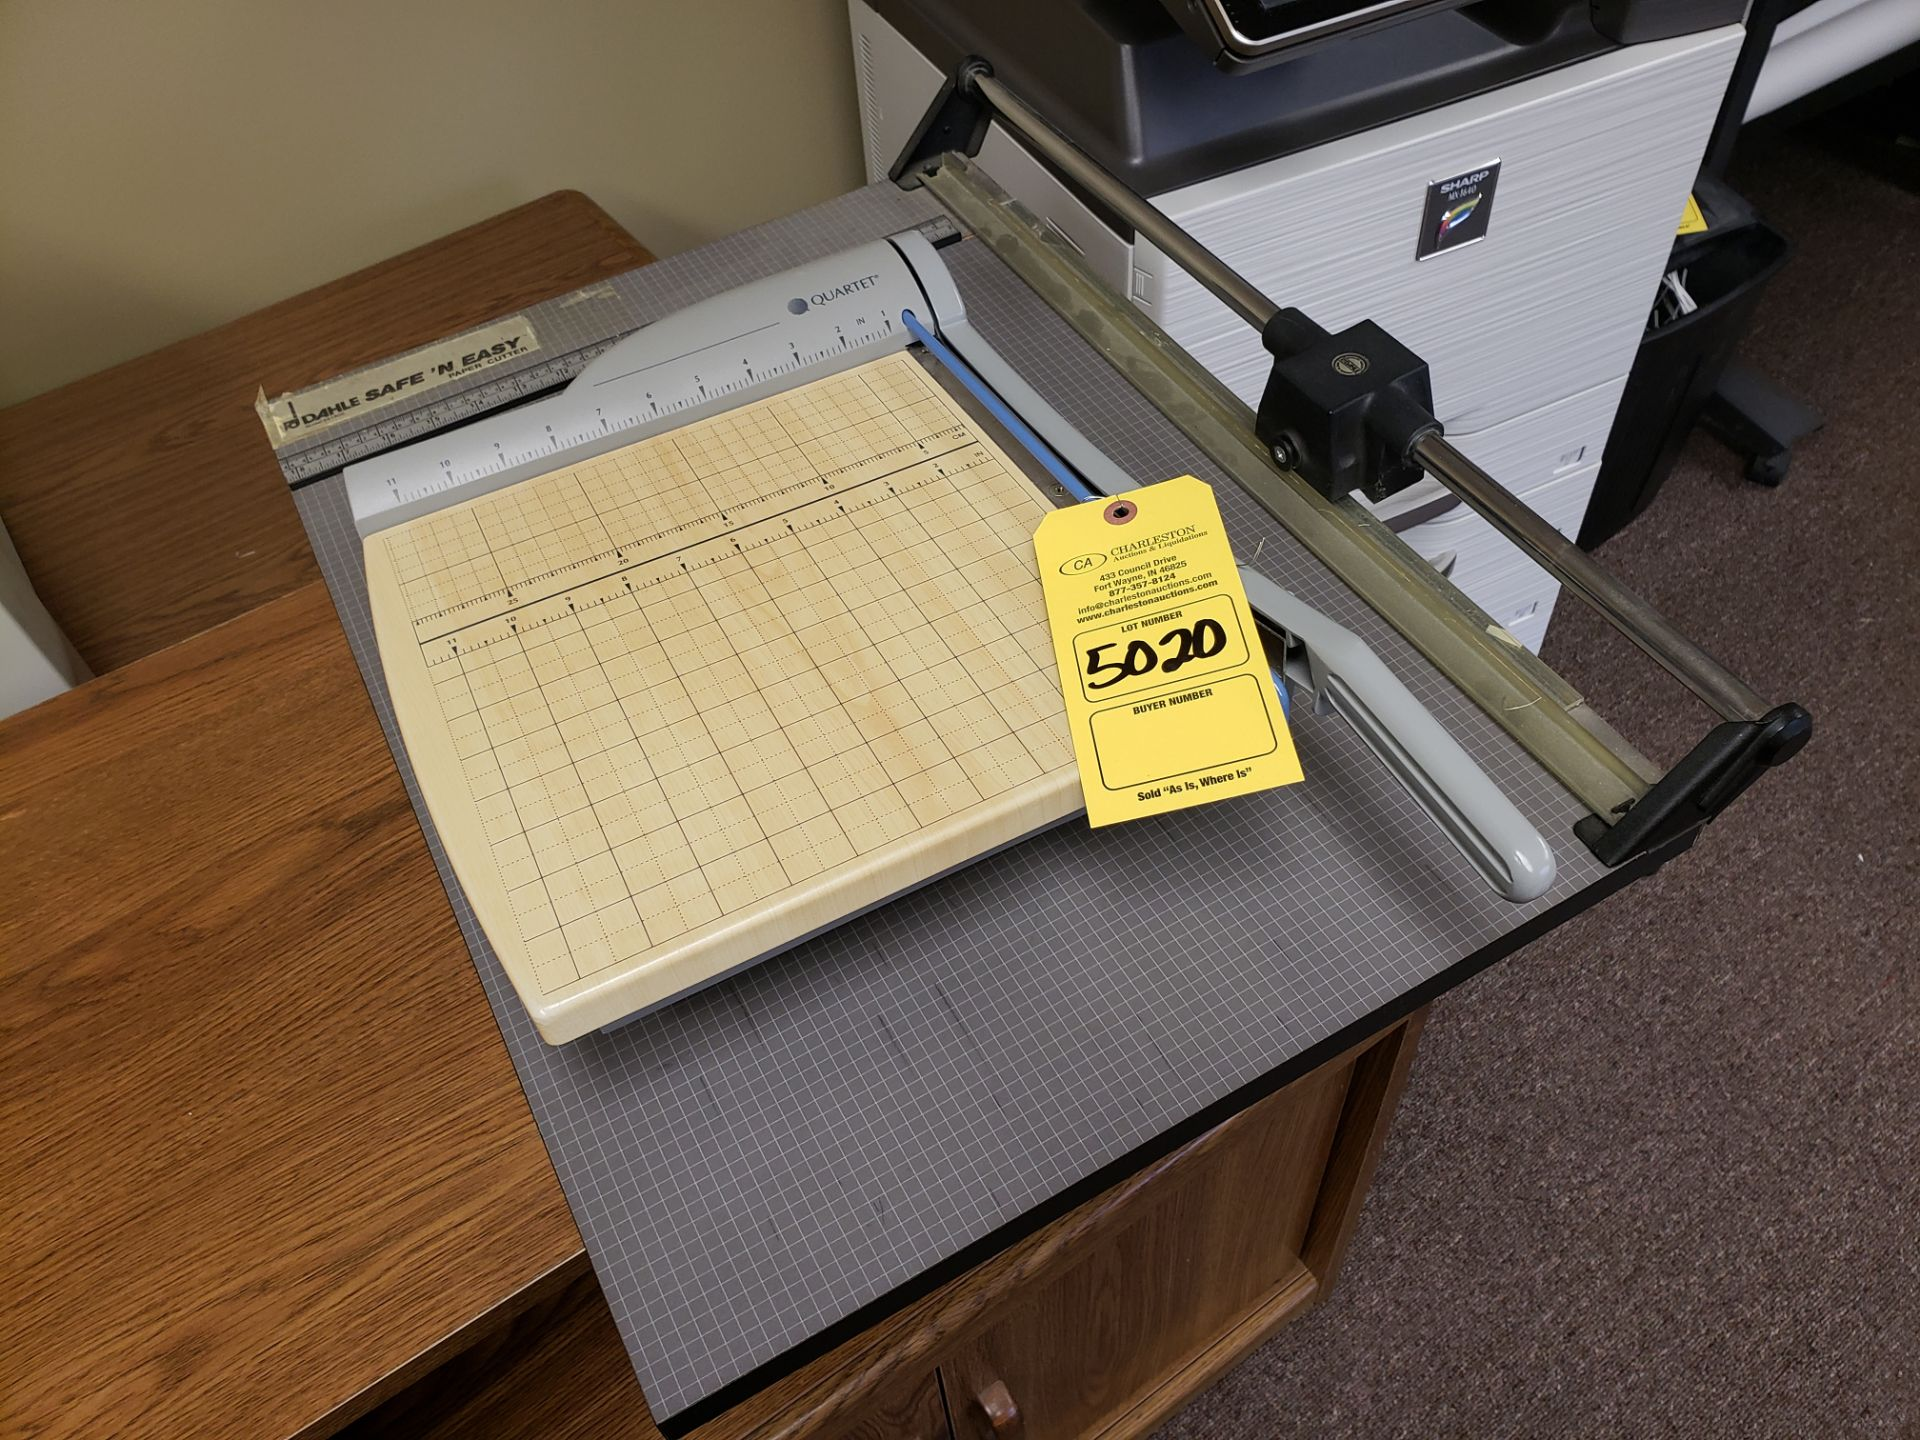 Lot 5020 - PAPER CUTTERS (LOCATED AT: 16335 LIMA ROAD BLDG. 4 HUNTERTOWN, IN 46748)